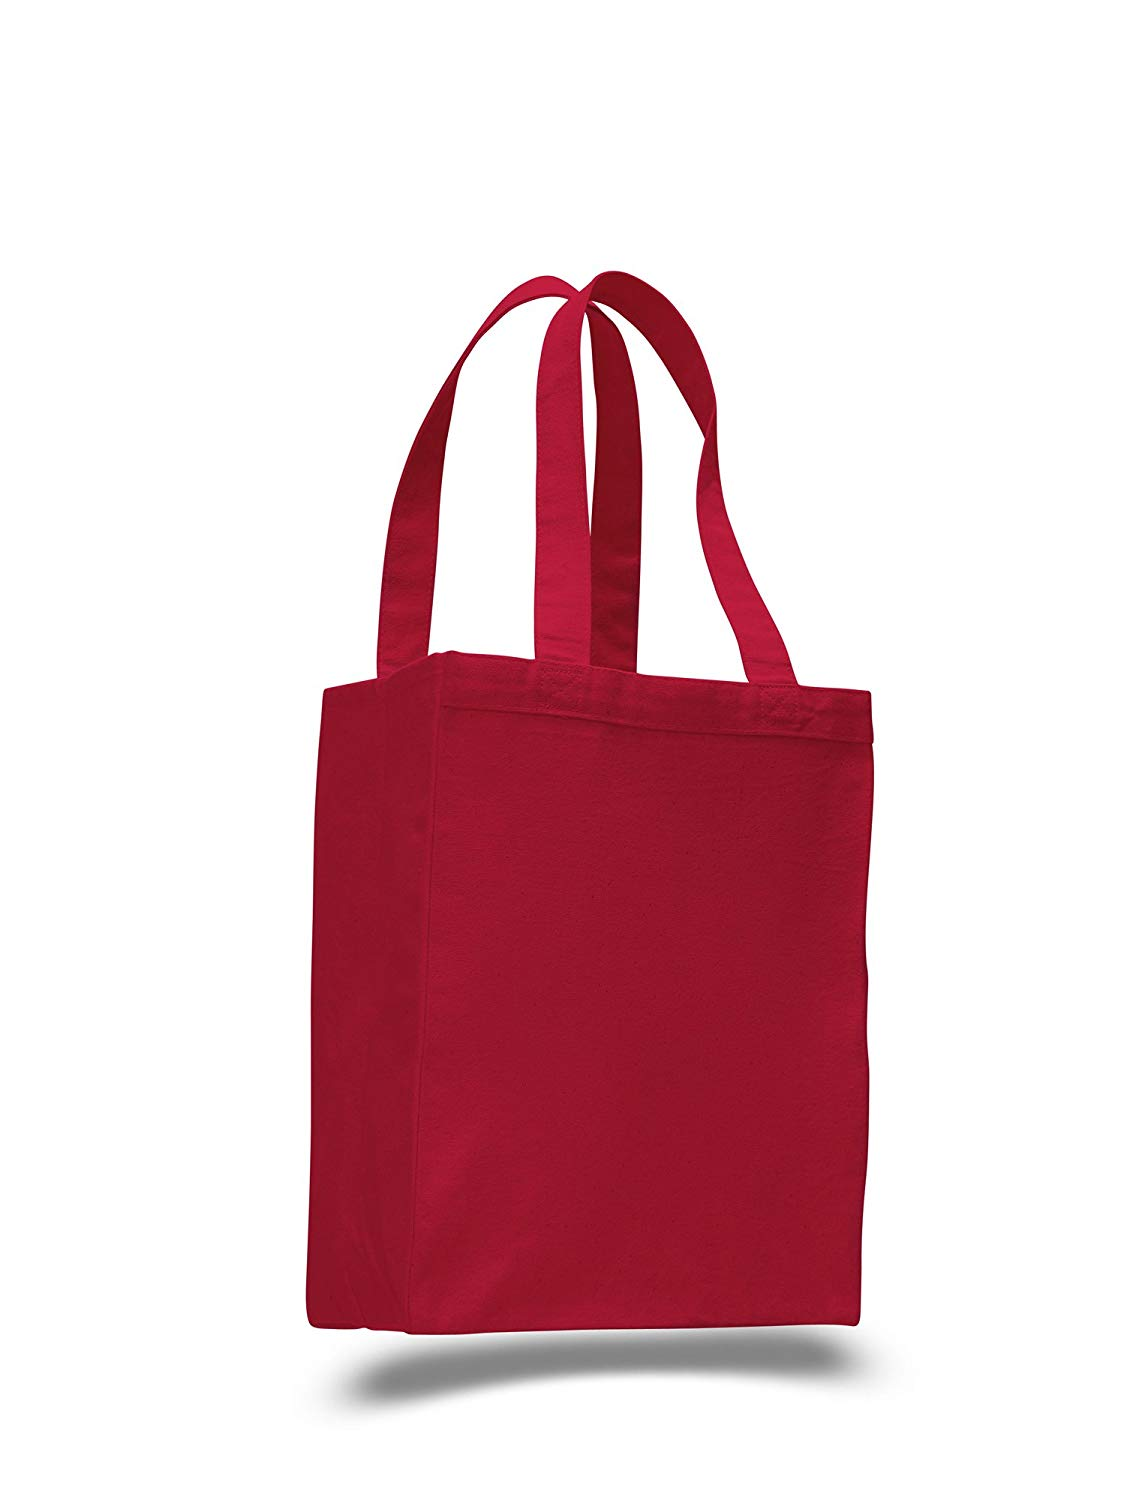 ce90d5b120 Get Quotations · BagzDepot (12 PACK) Heavy Duty Canvas Tote Bags